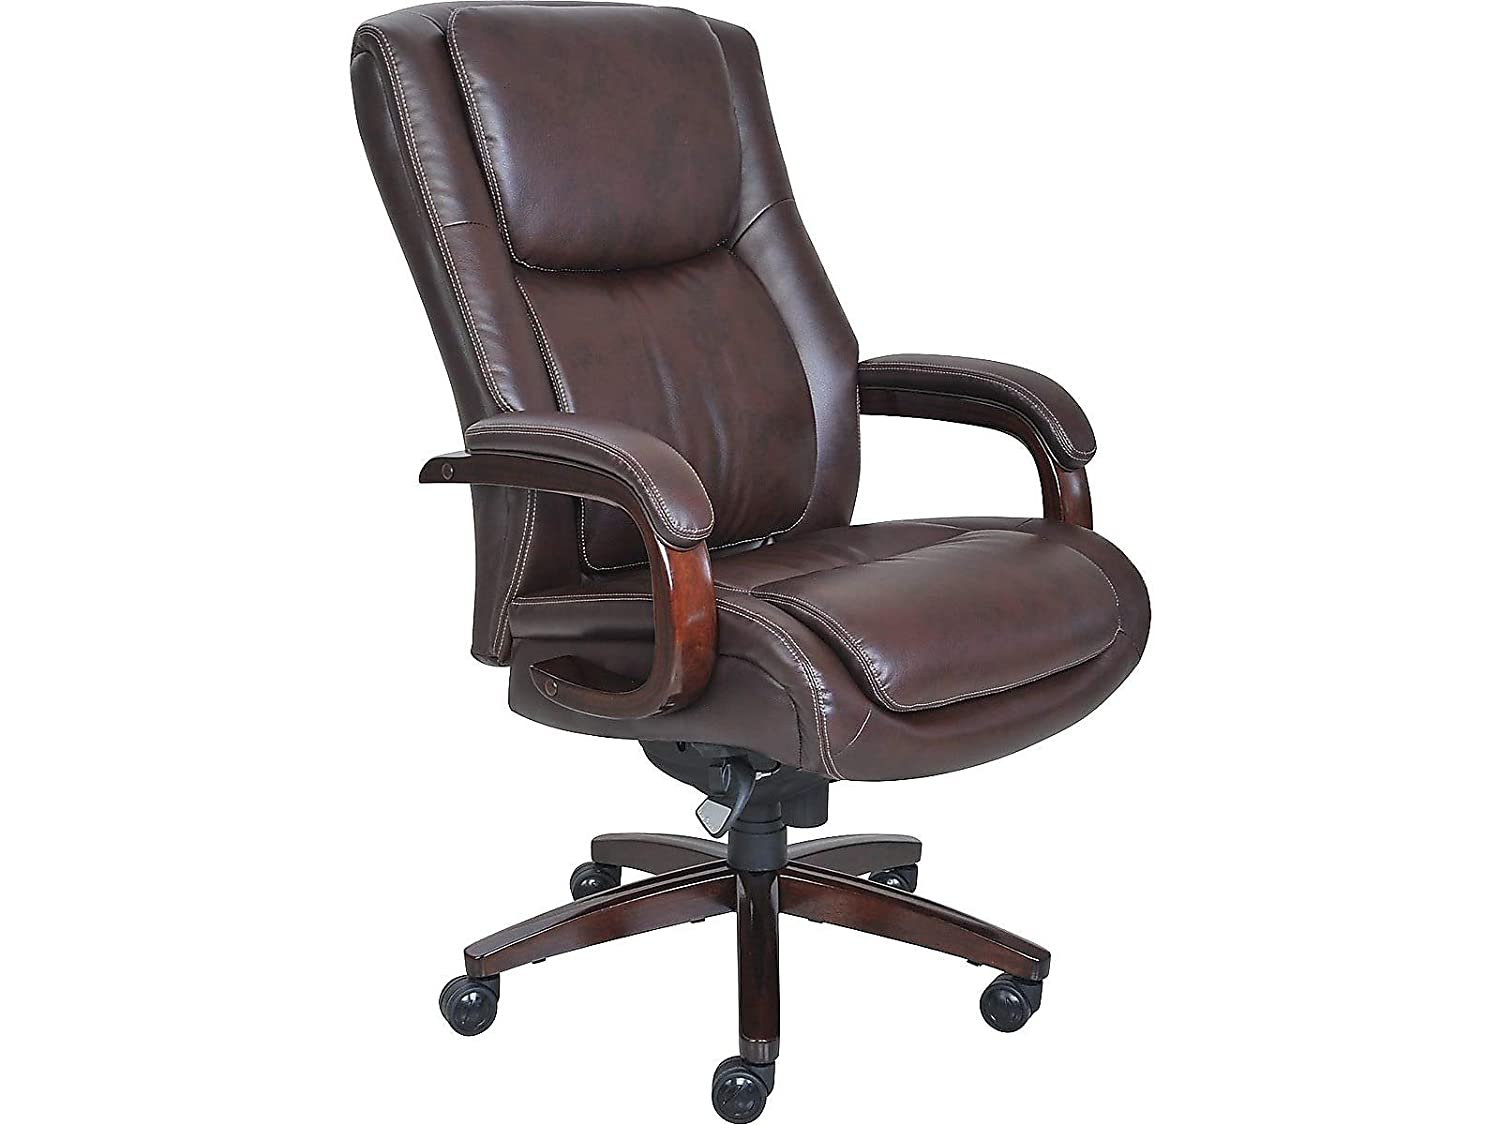 La-z-boy Winston Leather Executive Office Chair - Big And Tall Office Desk Chairs